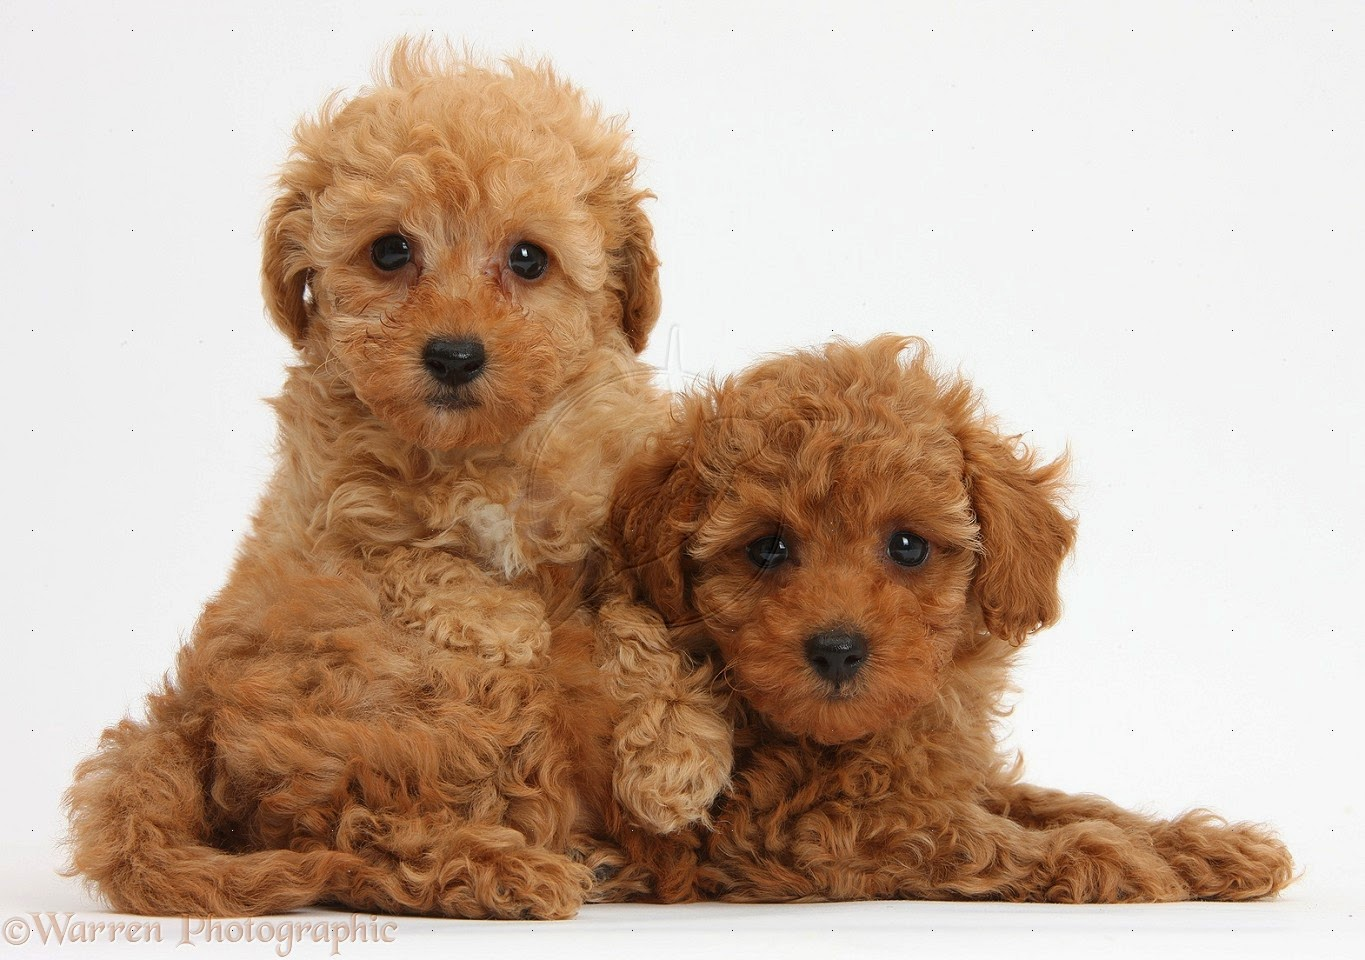 Toy Poodle Puppy Dogs : Rules of the jungle poodle puppies